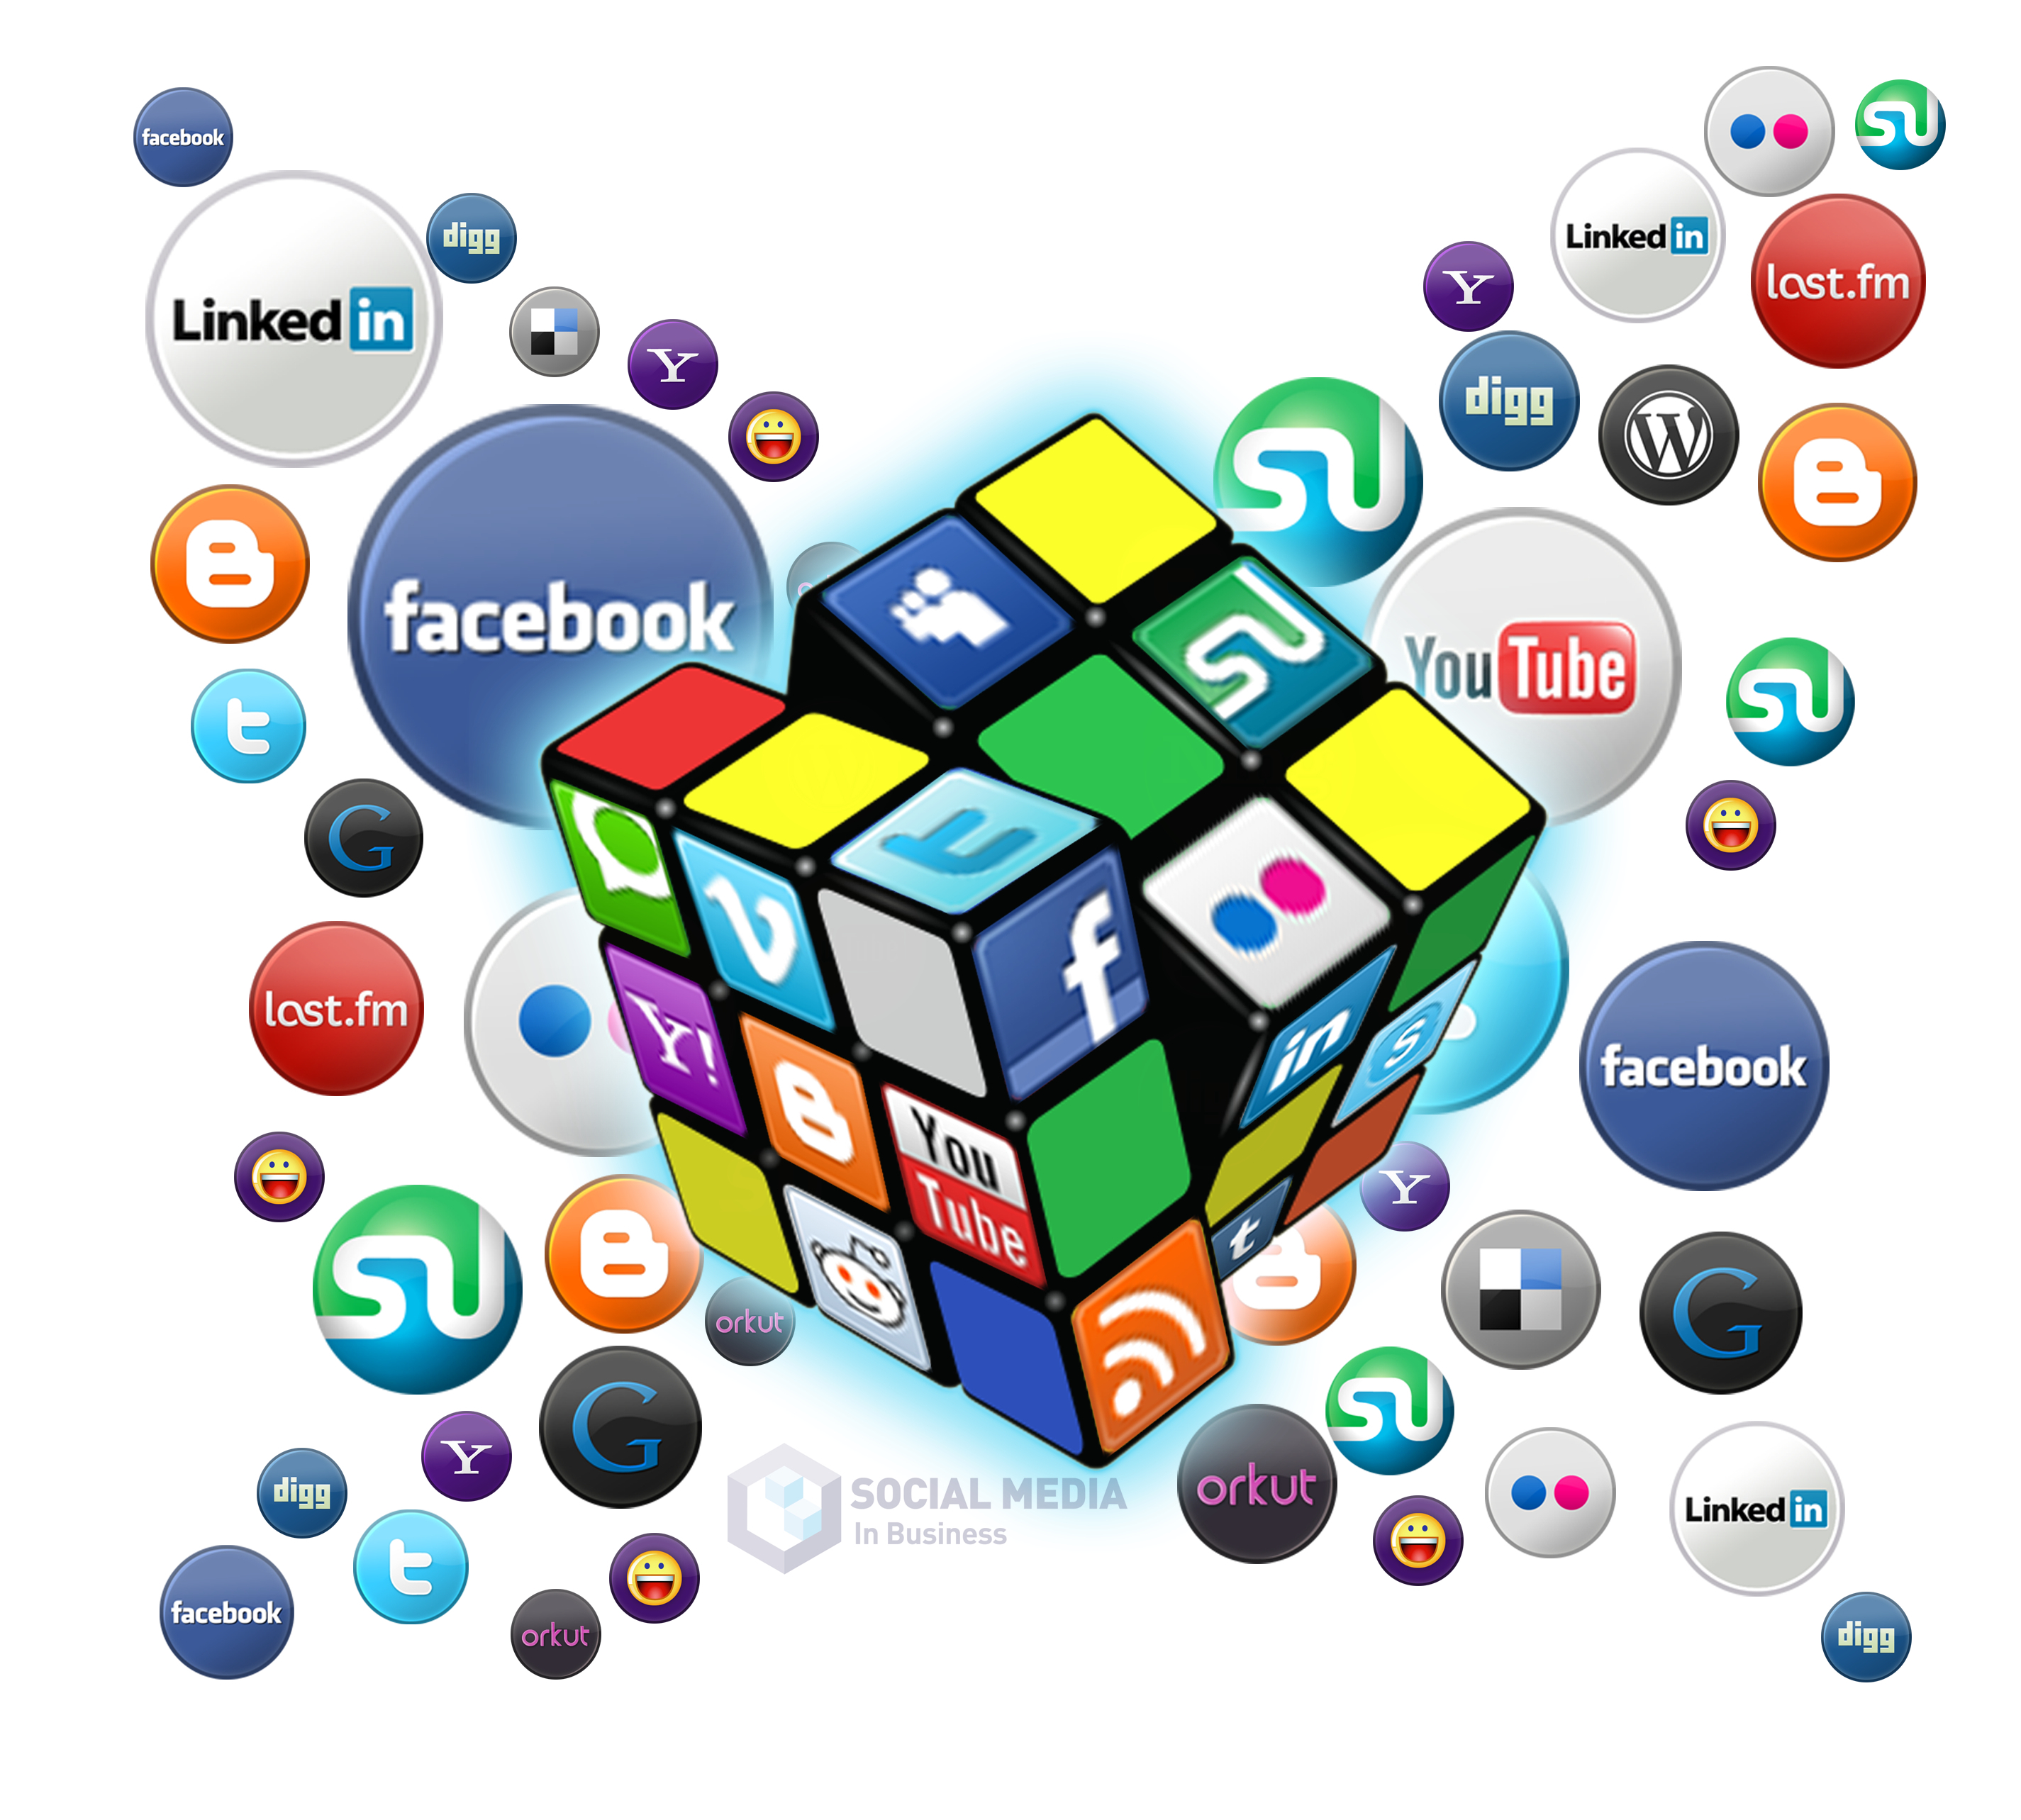 what are social media tools and applications